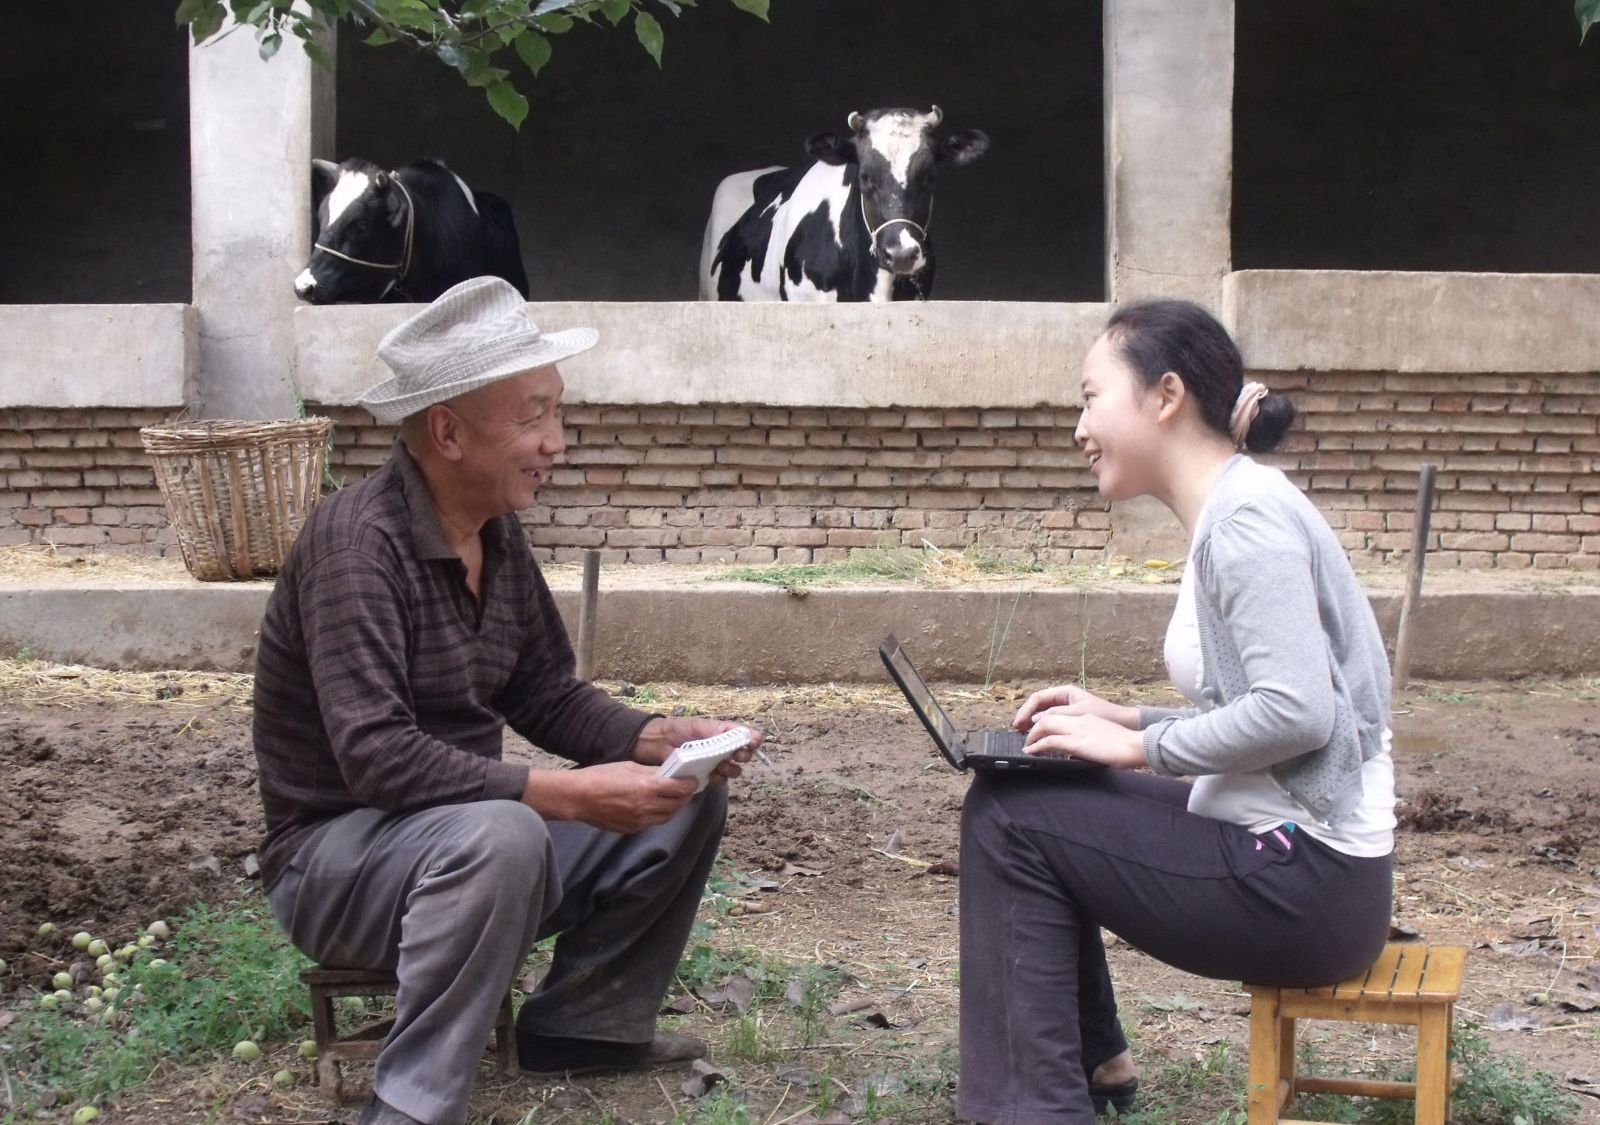 Researcher conducting interview